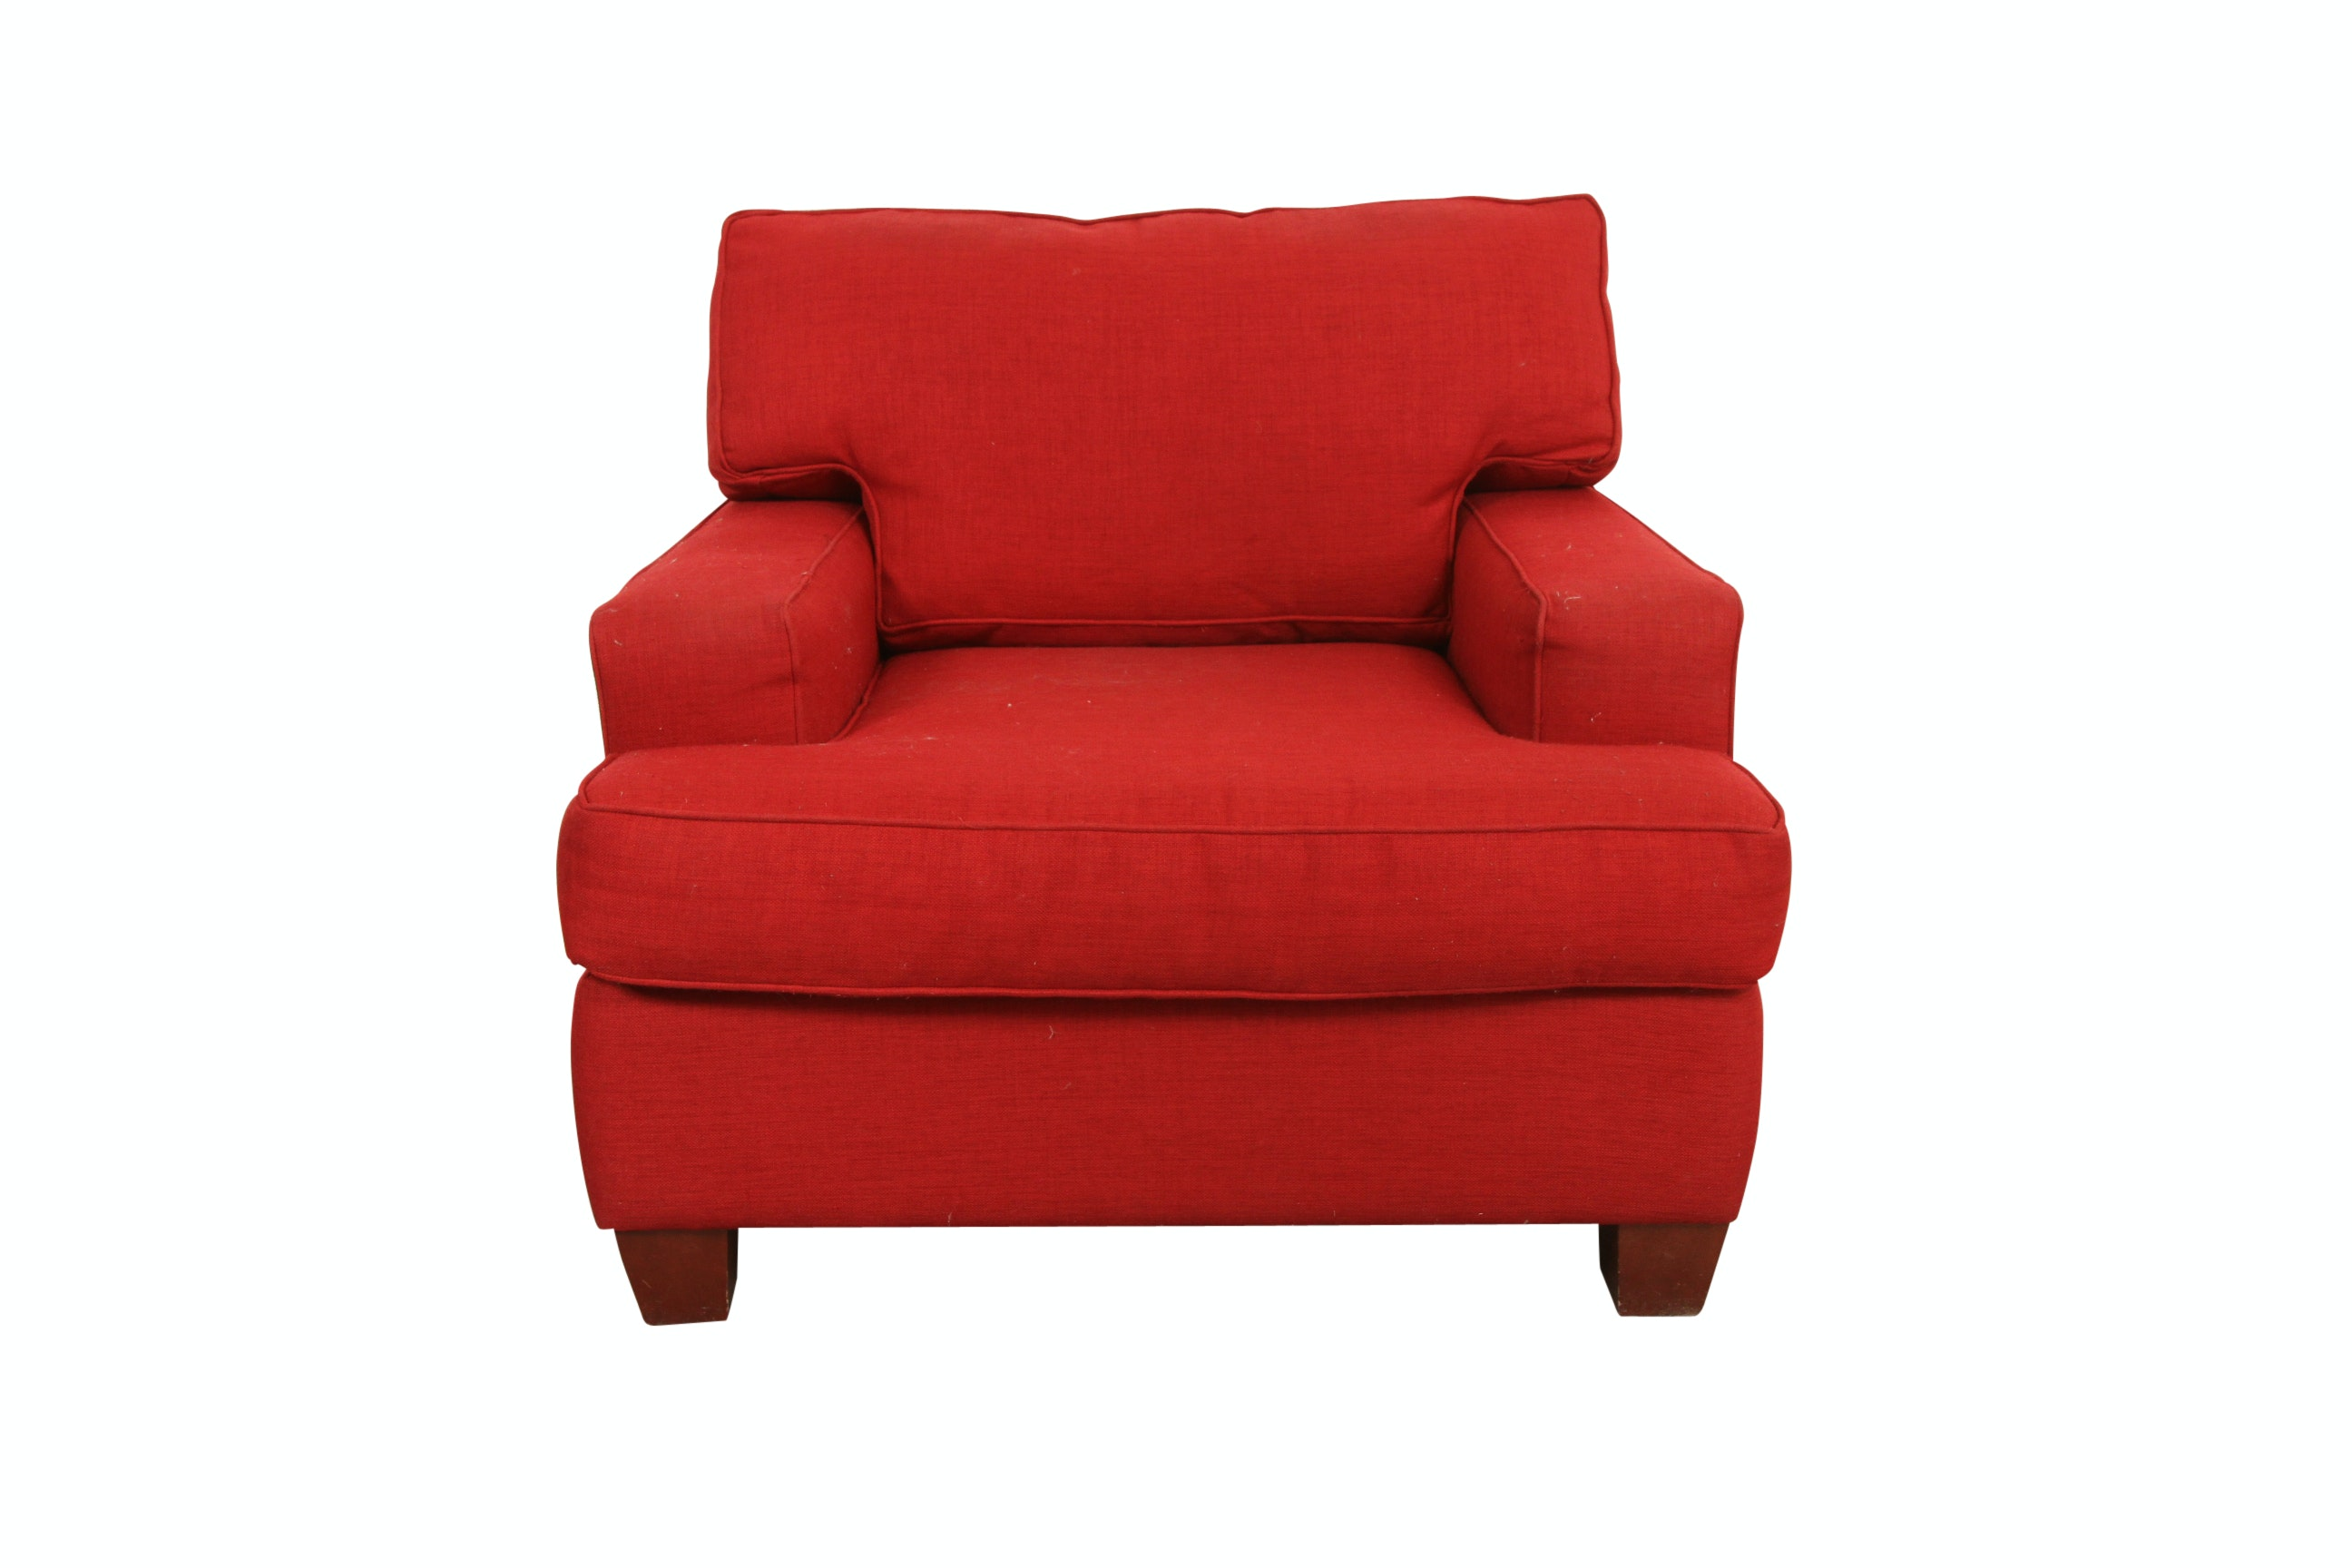 Red Upholstered Armchair By Sofa Express ...